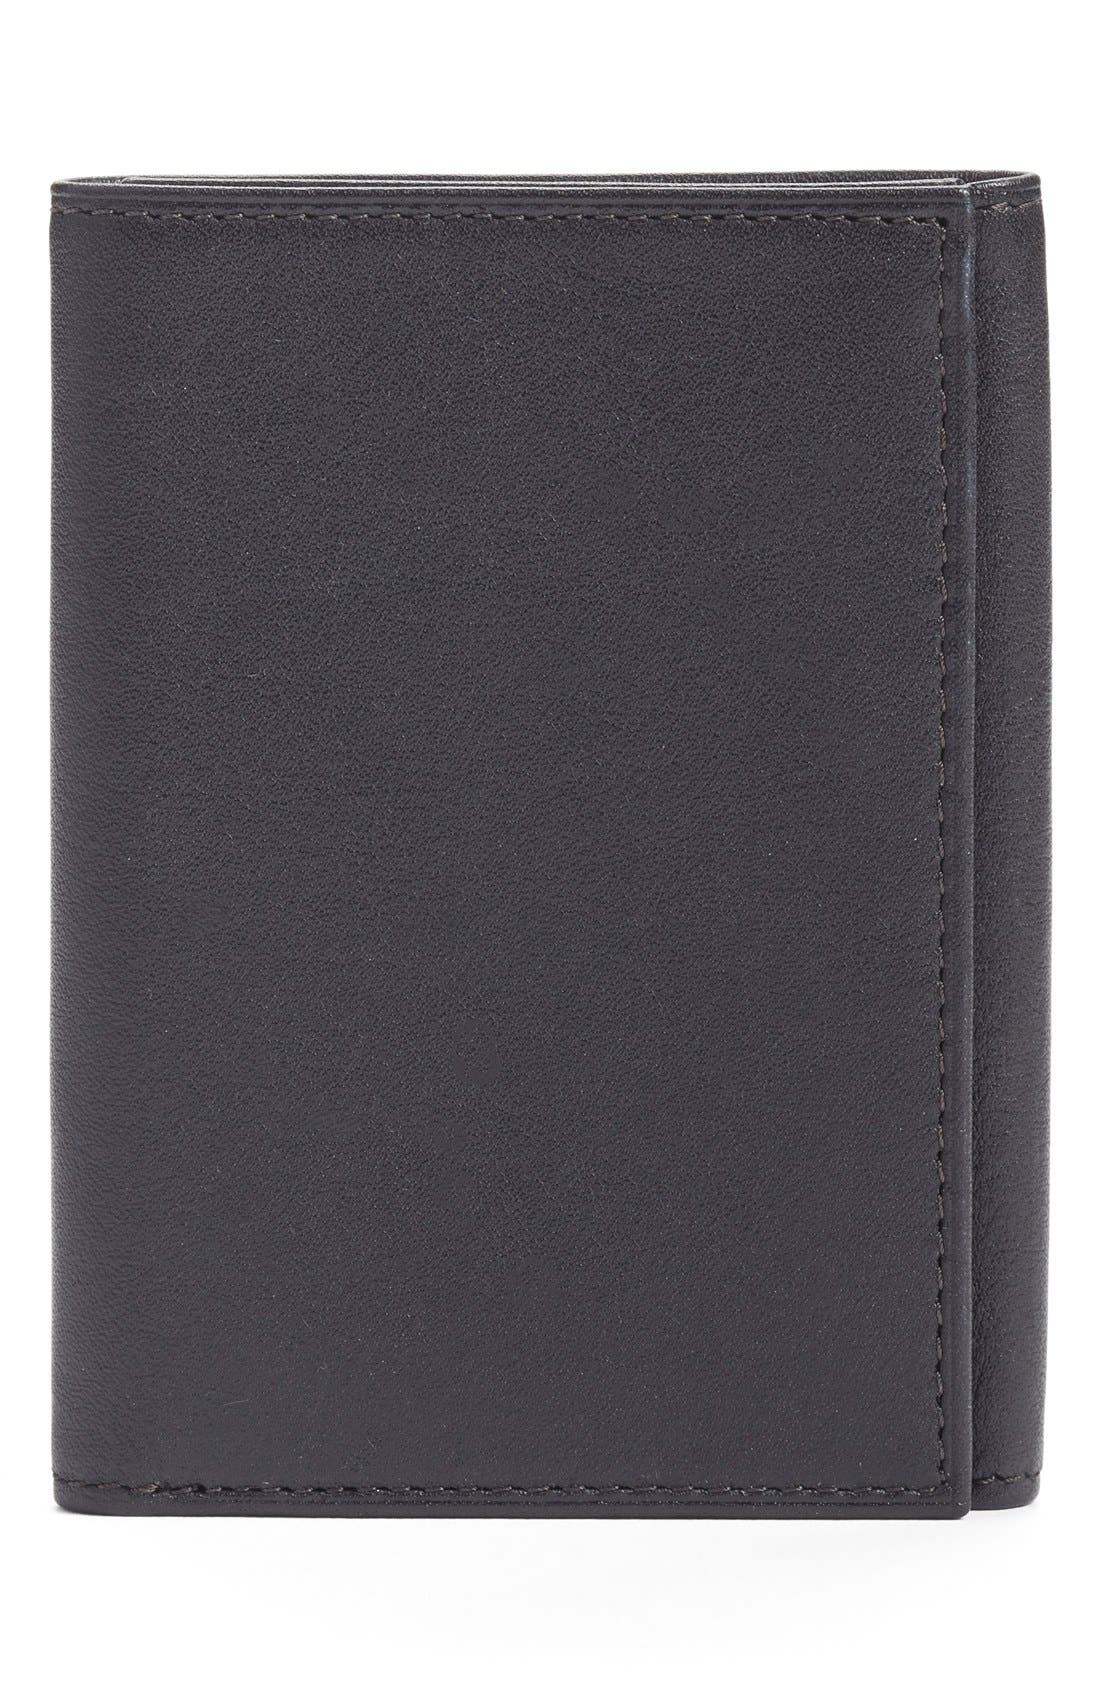 Leather Trifold Wallet,                         Main,                         color, Black